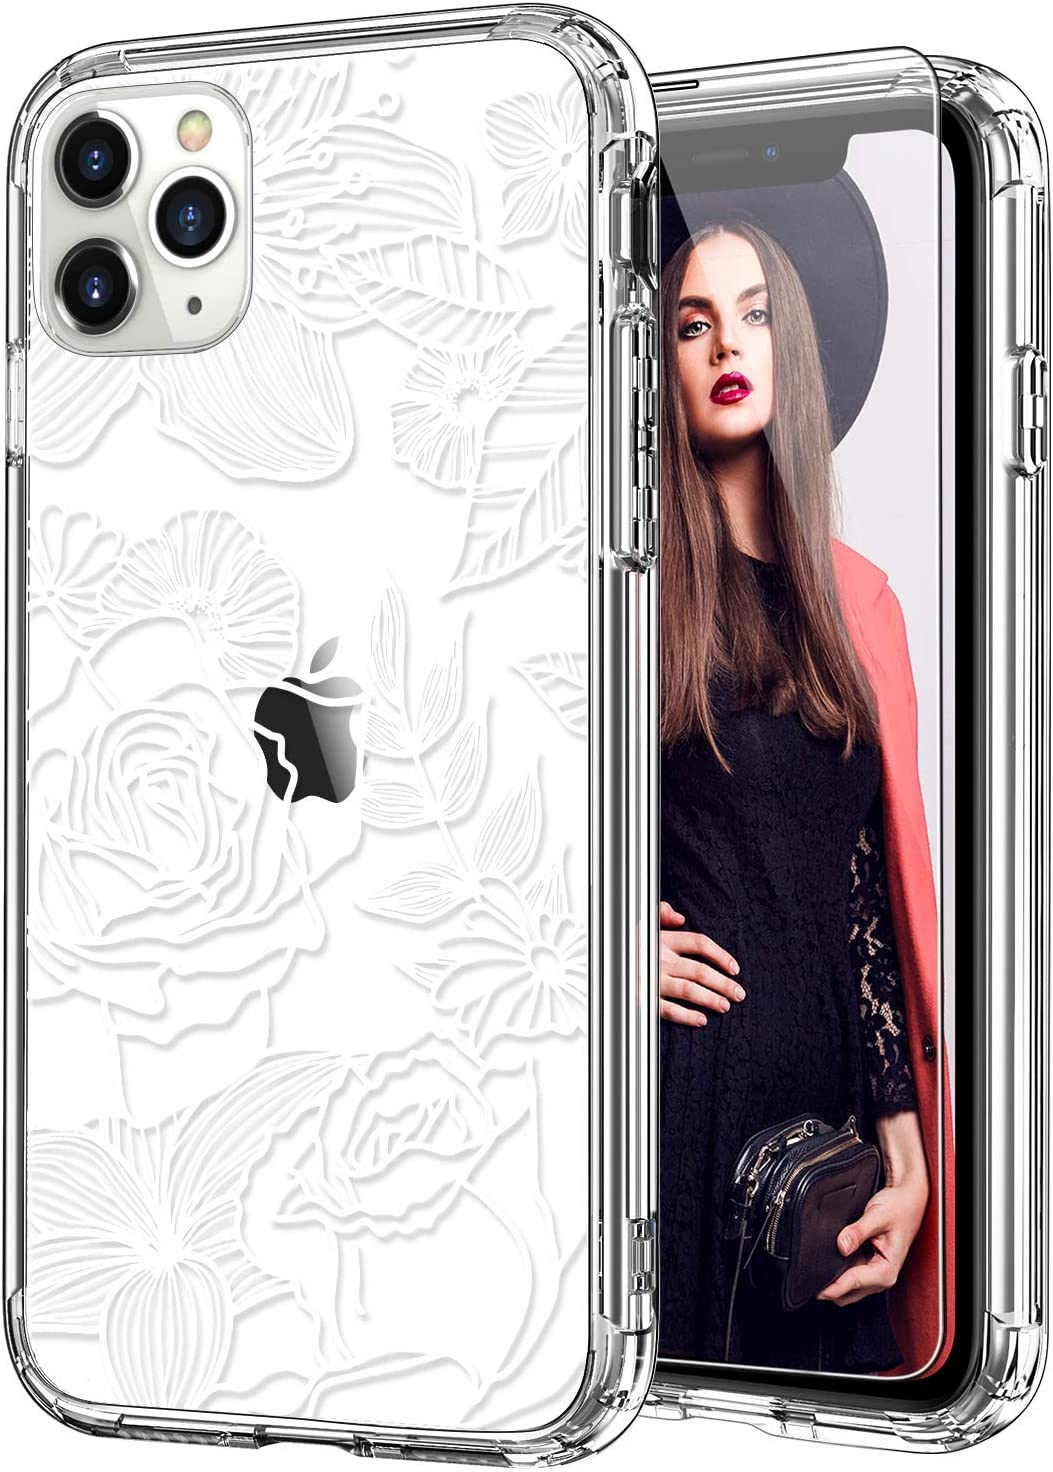 ICEDIO iPhone 11 Pro Case with Screen Protector,Clear with Elegant White Blooming Floral Patterns for Girls Women,Shockproof Slim Fit TPU Cover Protective Phone Case for Apple iPhone 11 Pro 5.8 Inch